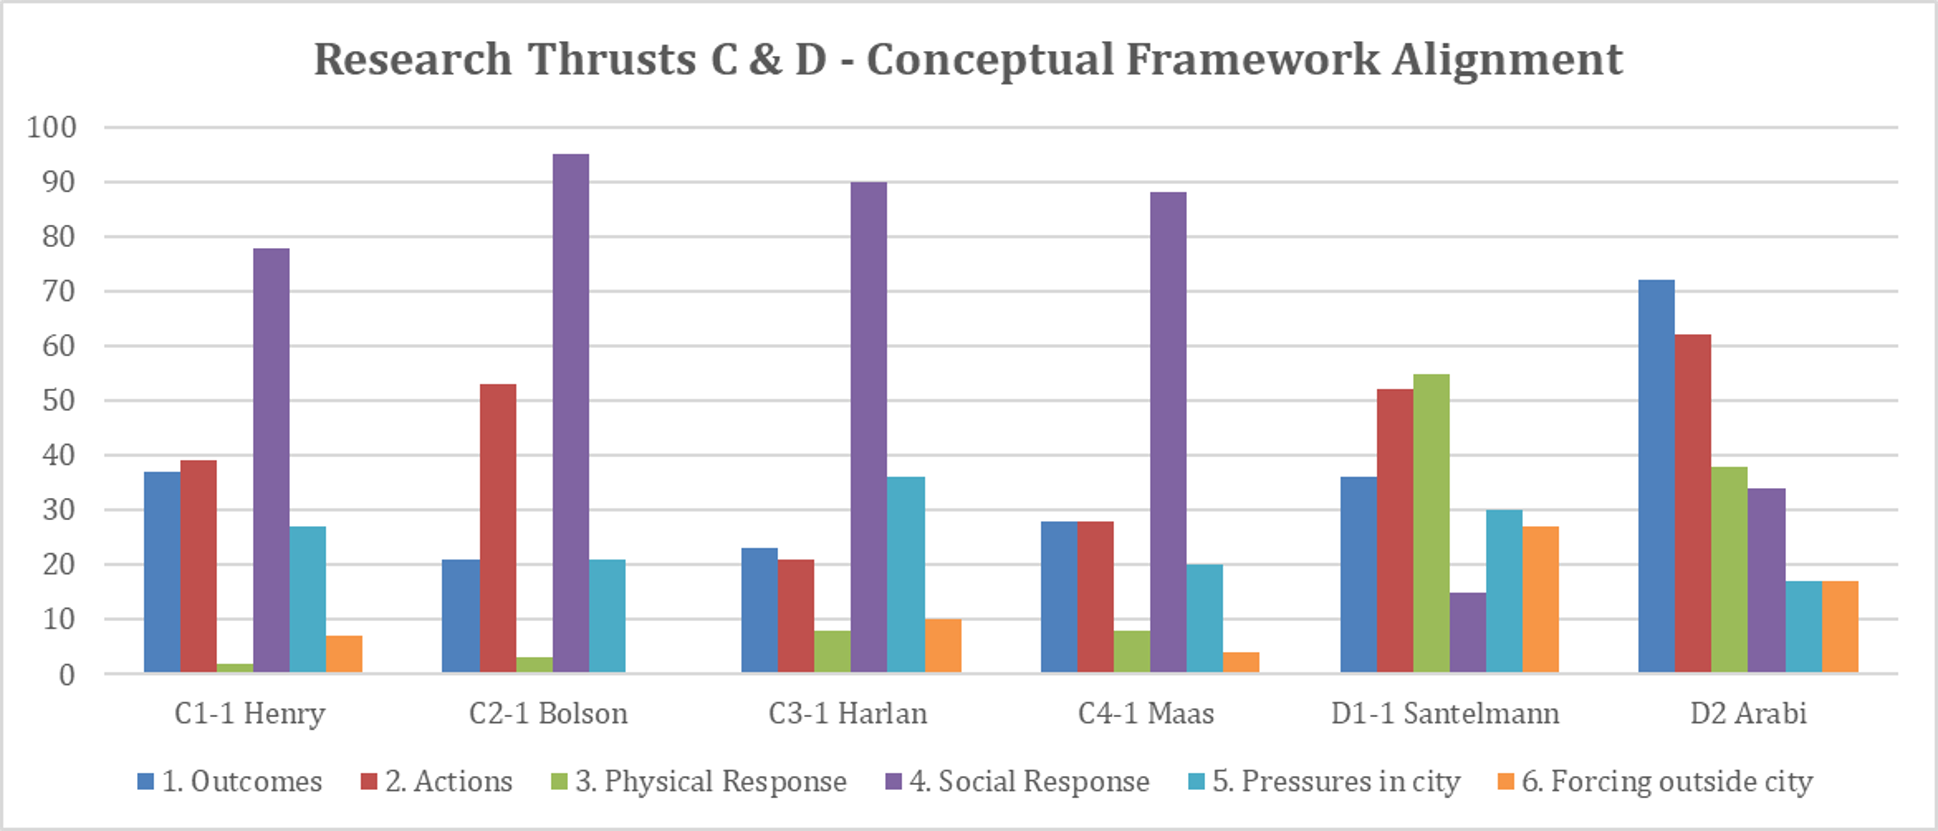 Thrust C & D Framework Poll